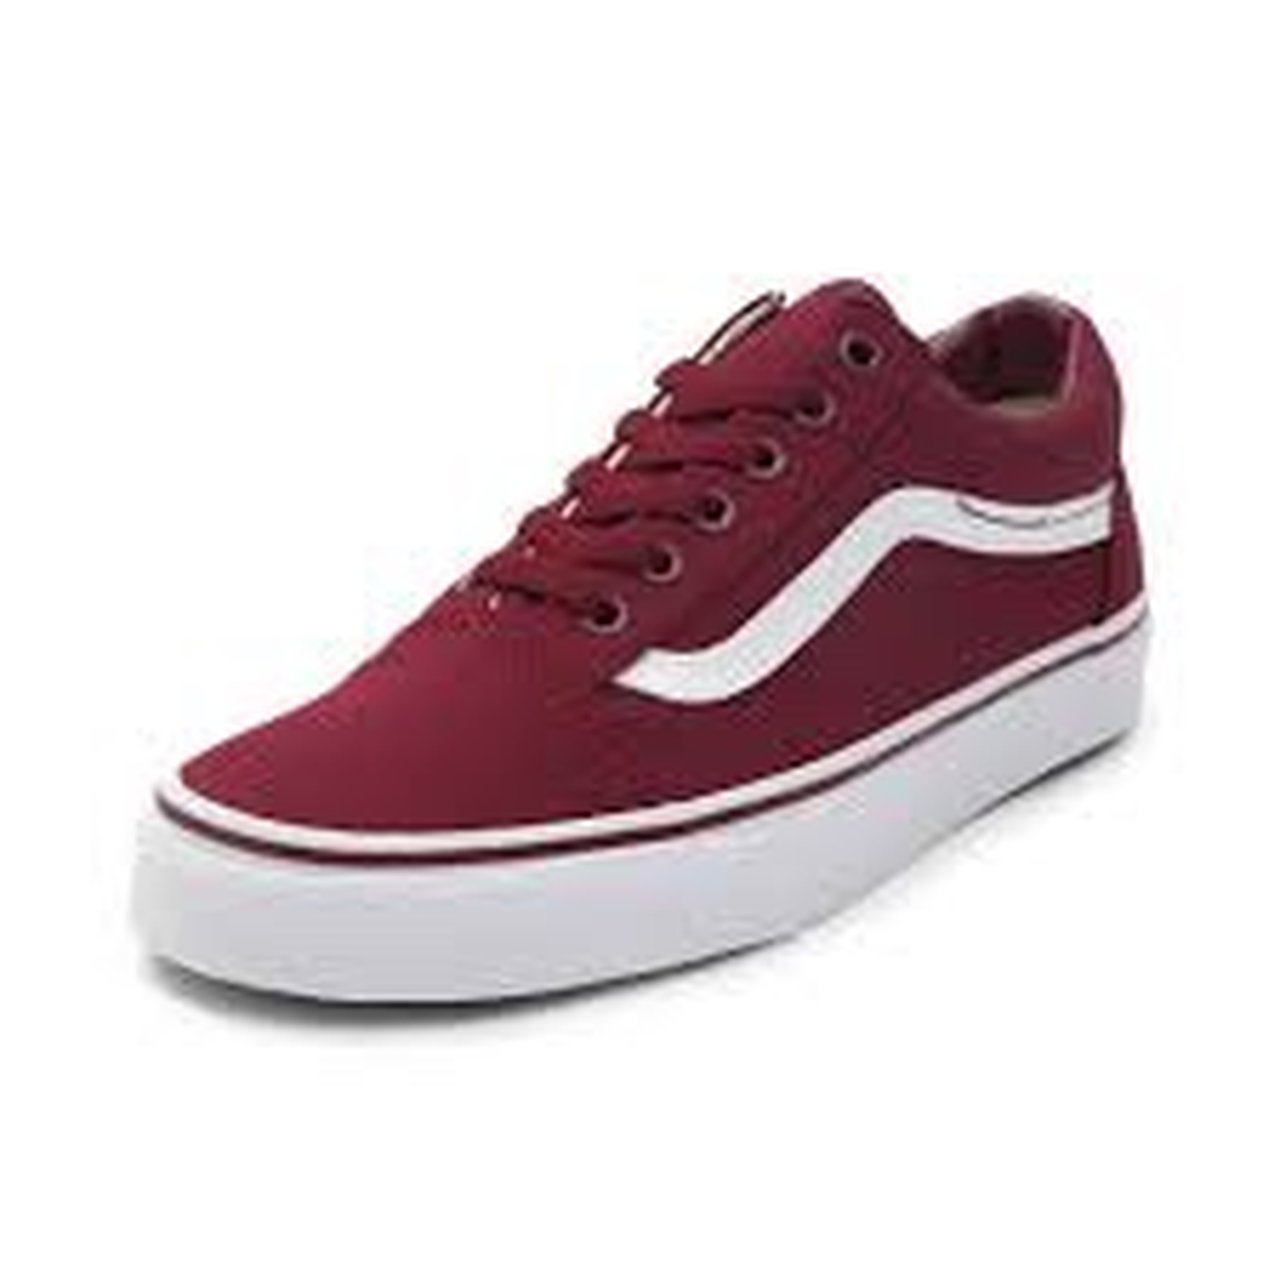 Maroon vans old skool skate shoes! Size  women s 6.5   men s - Depop 11301af88